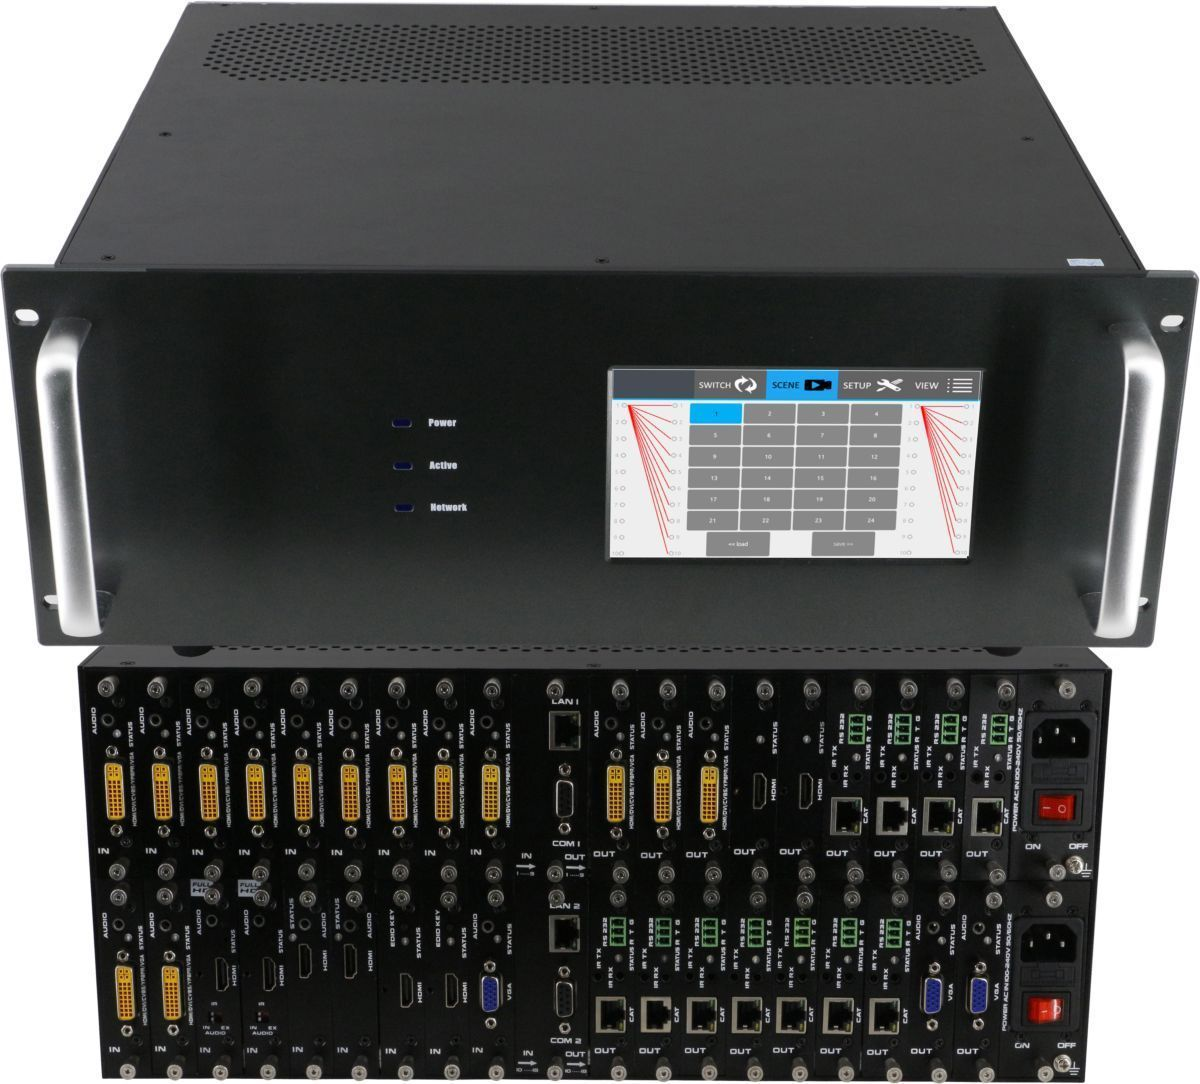 12x8 HDMI Matrix Switcher with a Touchscreen